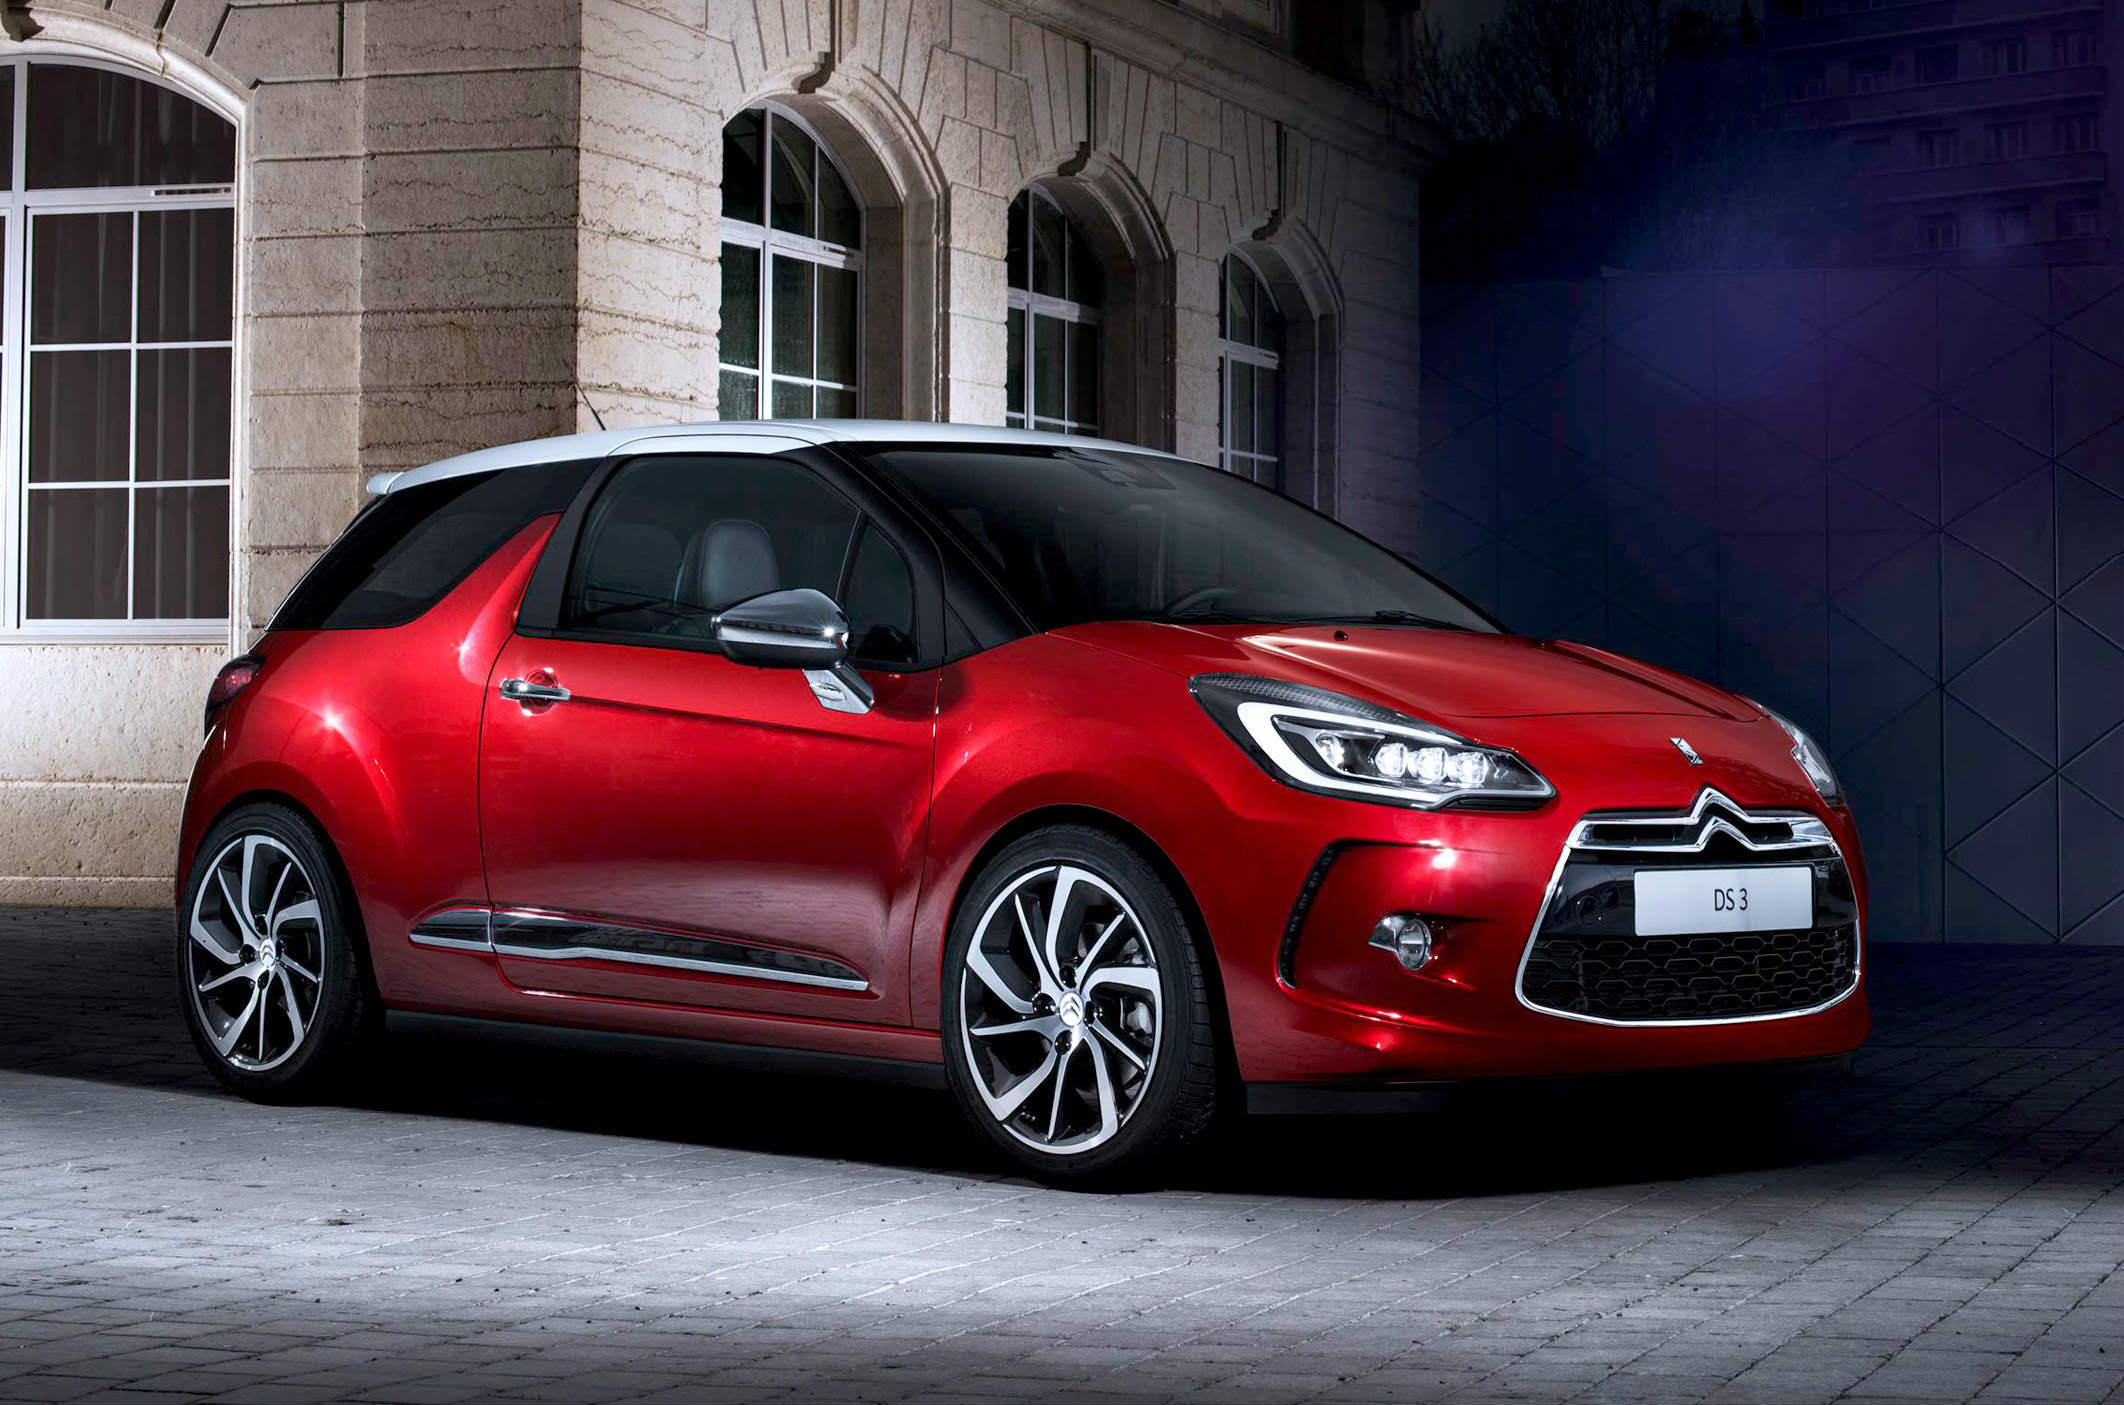 image of a red ds 3 car exterior